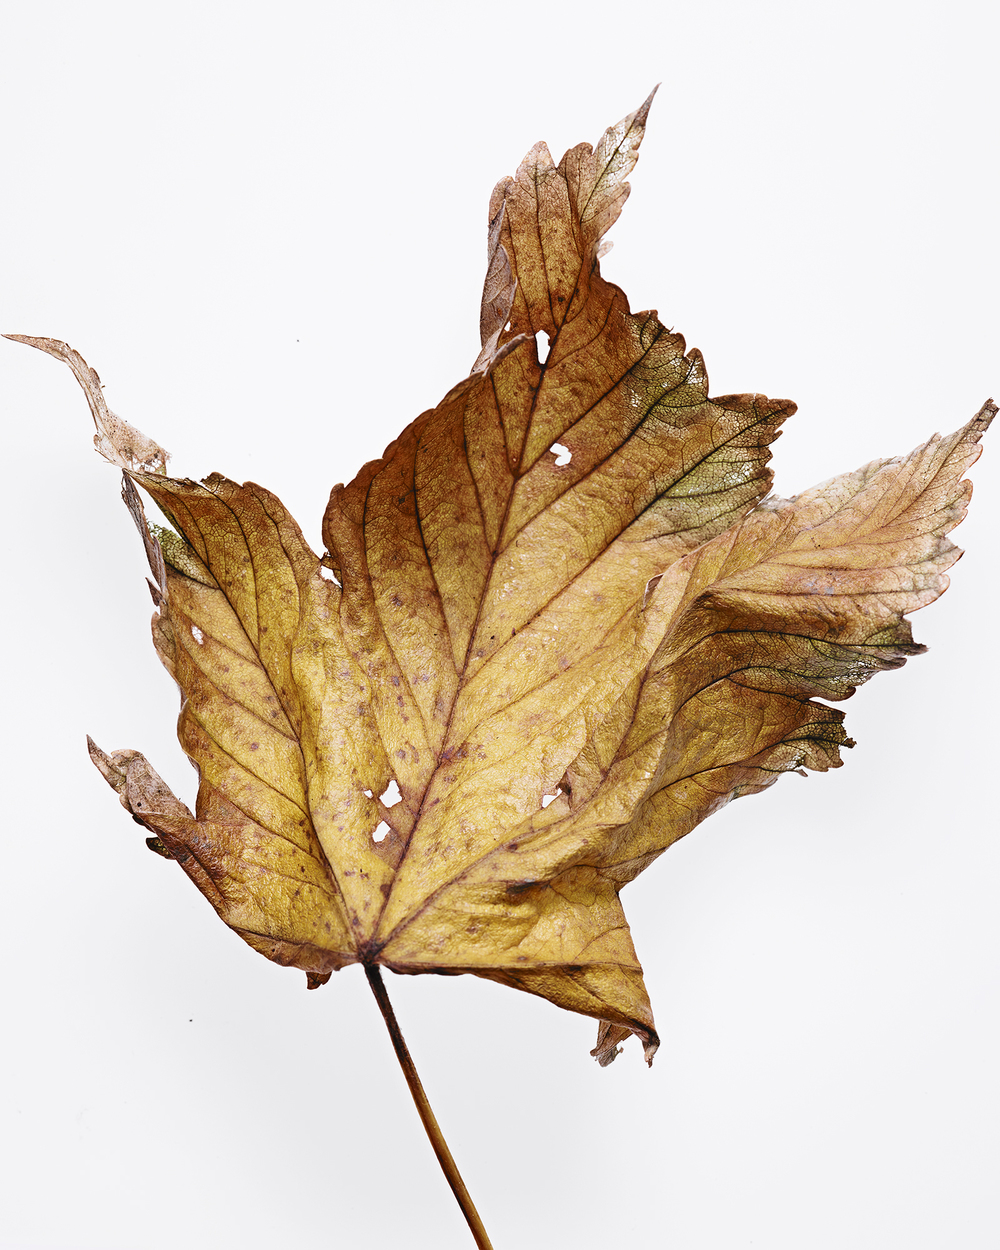 141219_LEAVES_RDH62652_WebReady.jpg